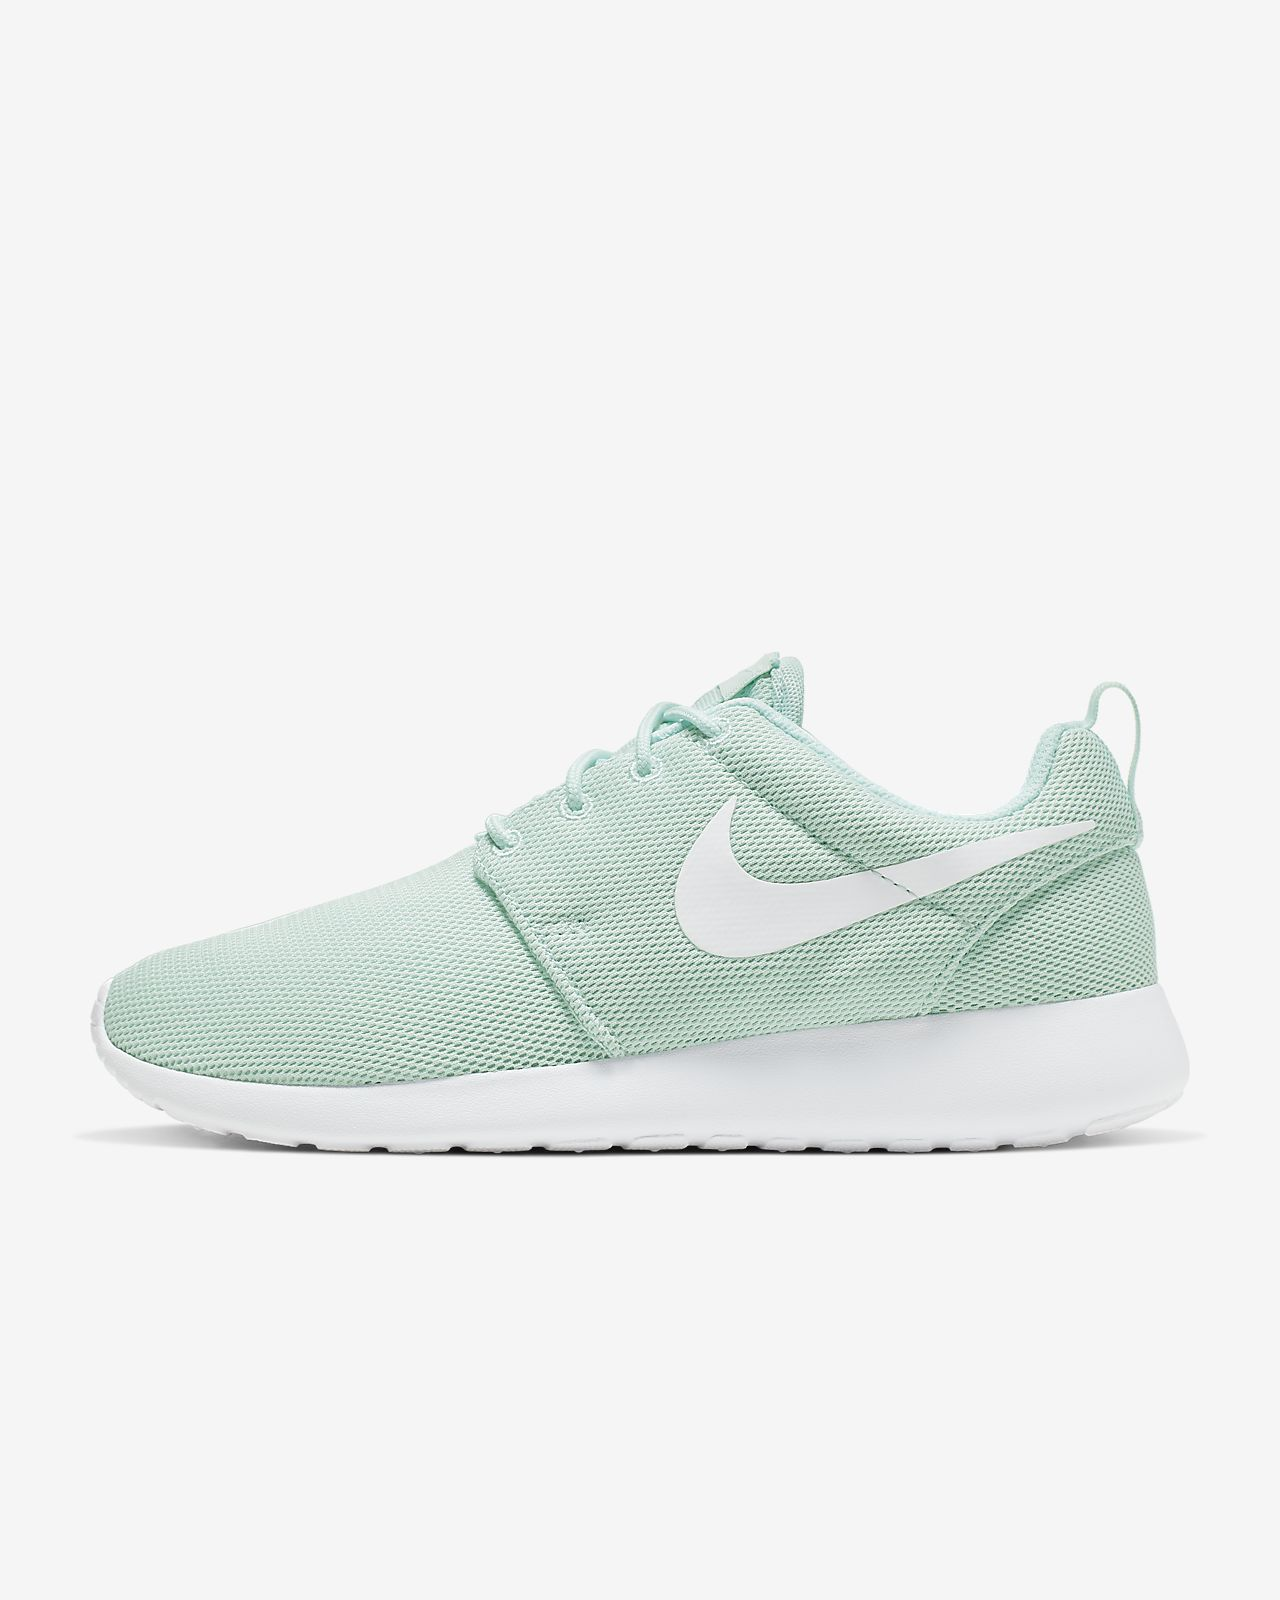 premium selection 7d0d0 2a877 ... Nike Roshe One Women s Shoe